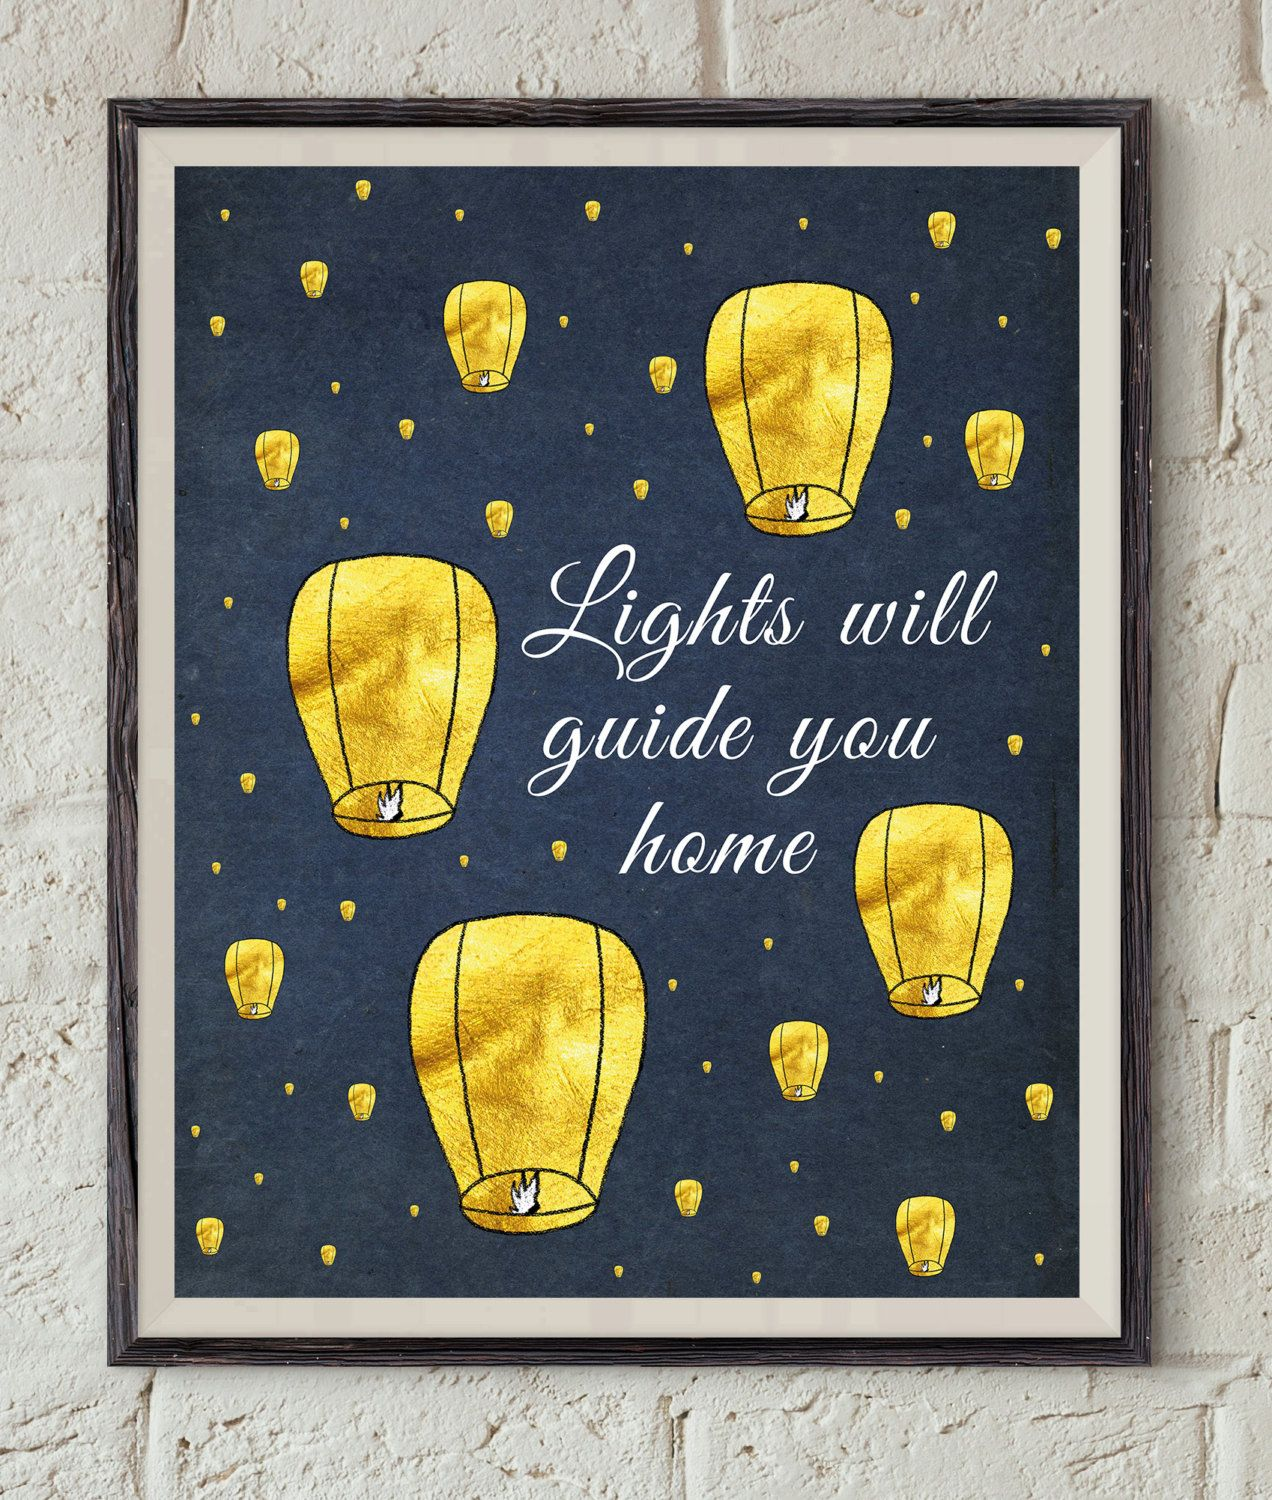 Coldplay Song Lyrics - Lights Will Guide You Home - Paper Lantern Art - Lyrics Printable - Music Wall Art - Fix You Quote Art - Song Print by Lepetitchaperon on Etsy